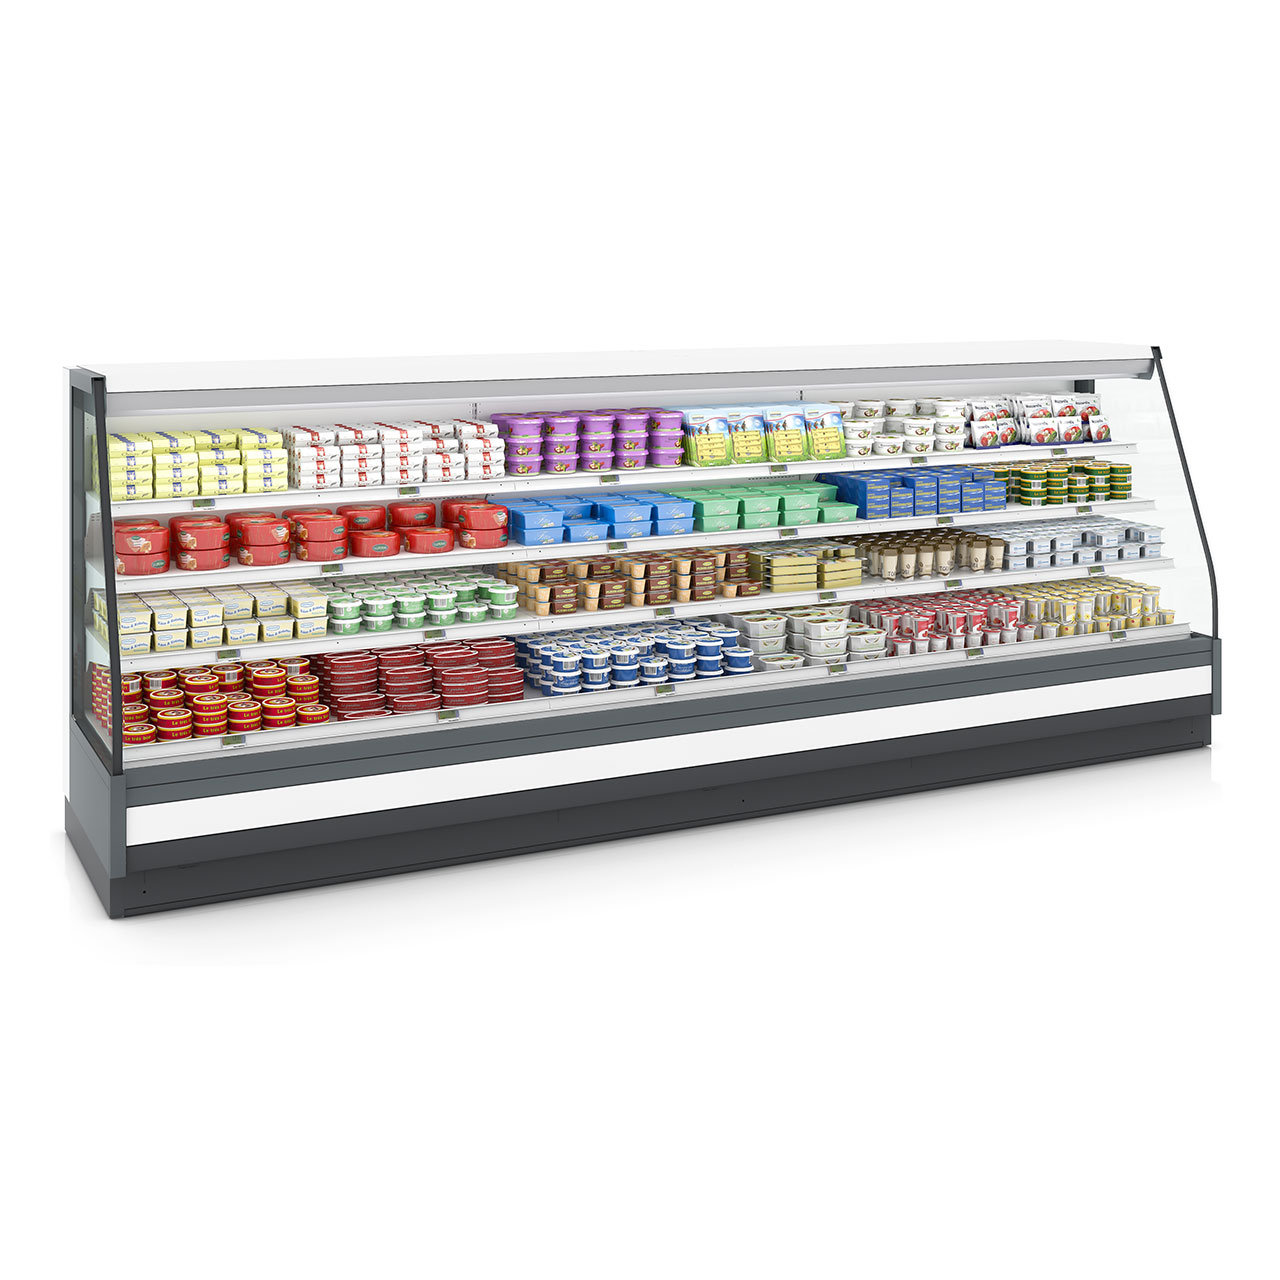 refrigerated-cabinet-e6-morea-gs-B